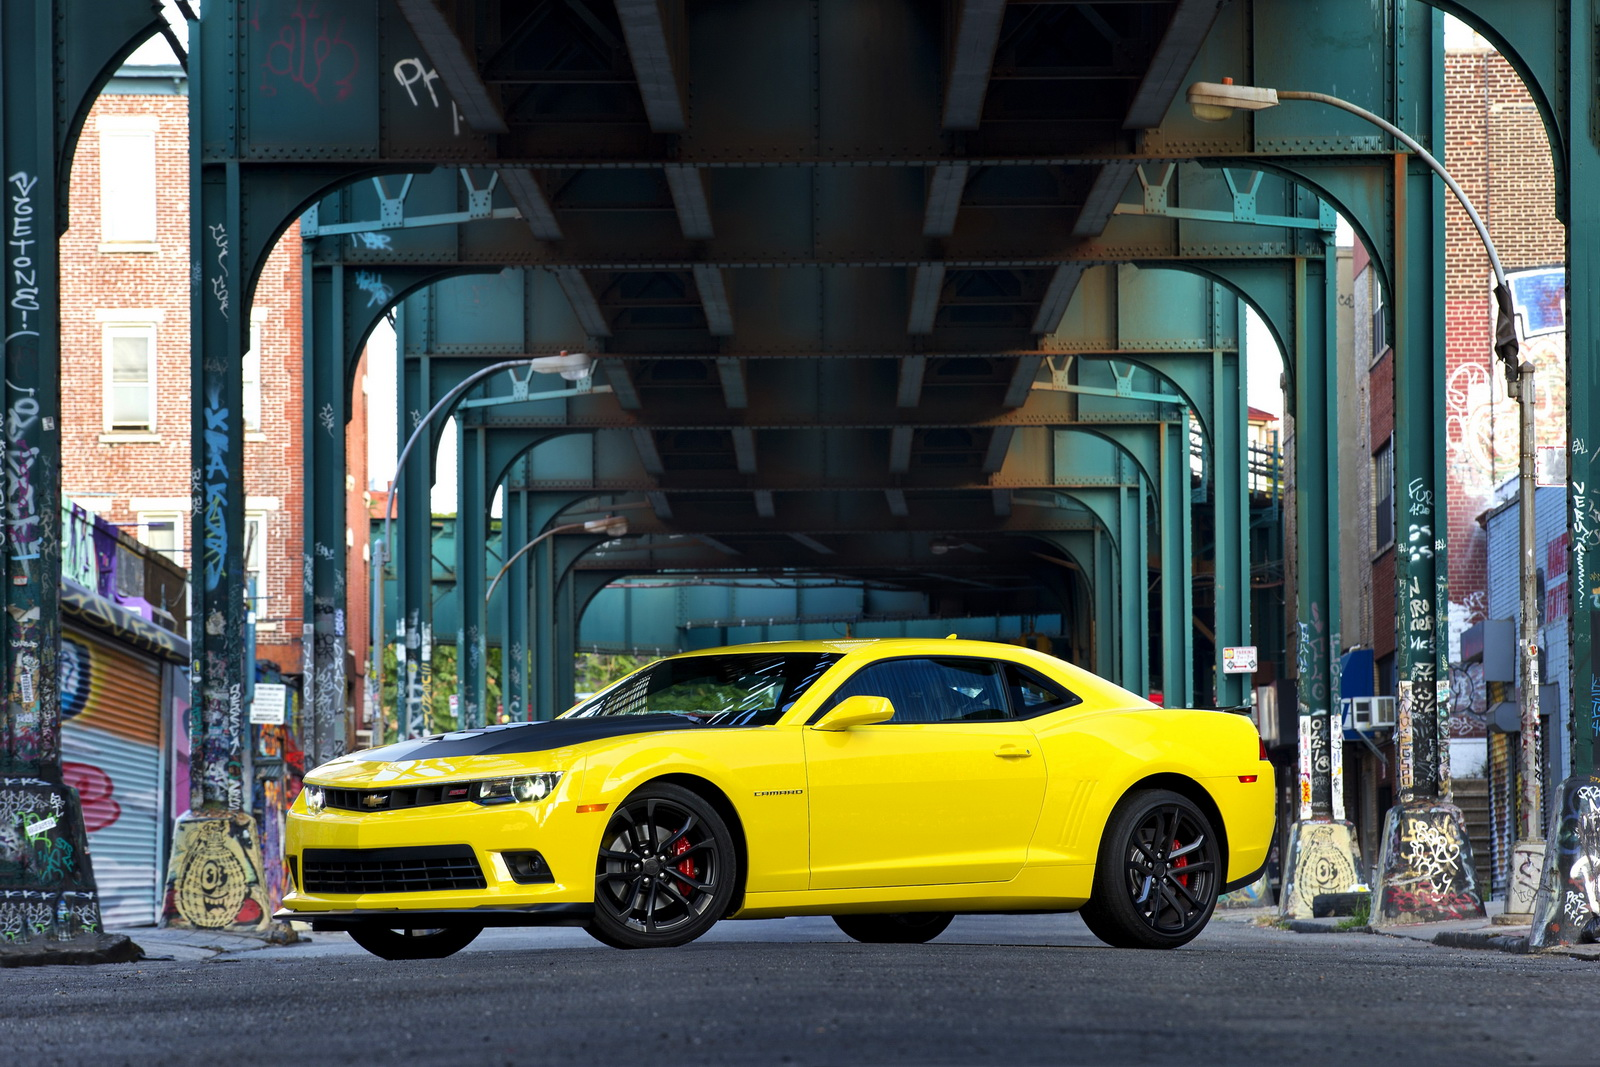 The 2014 Camaro is available with a track-focused 1LE Performance Package.